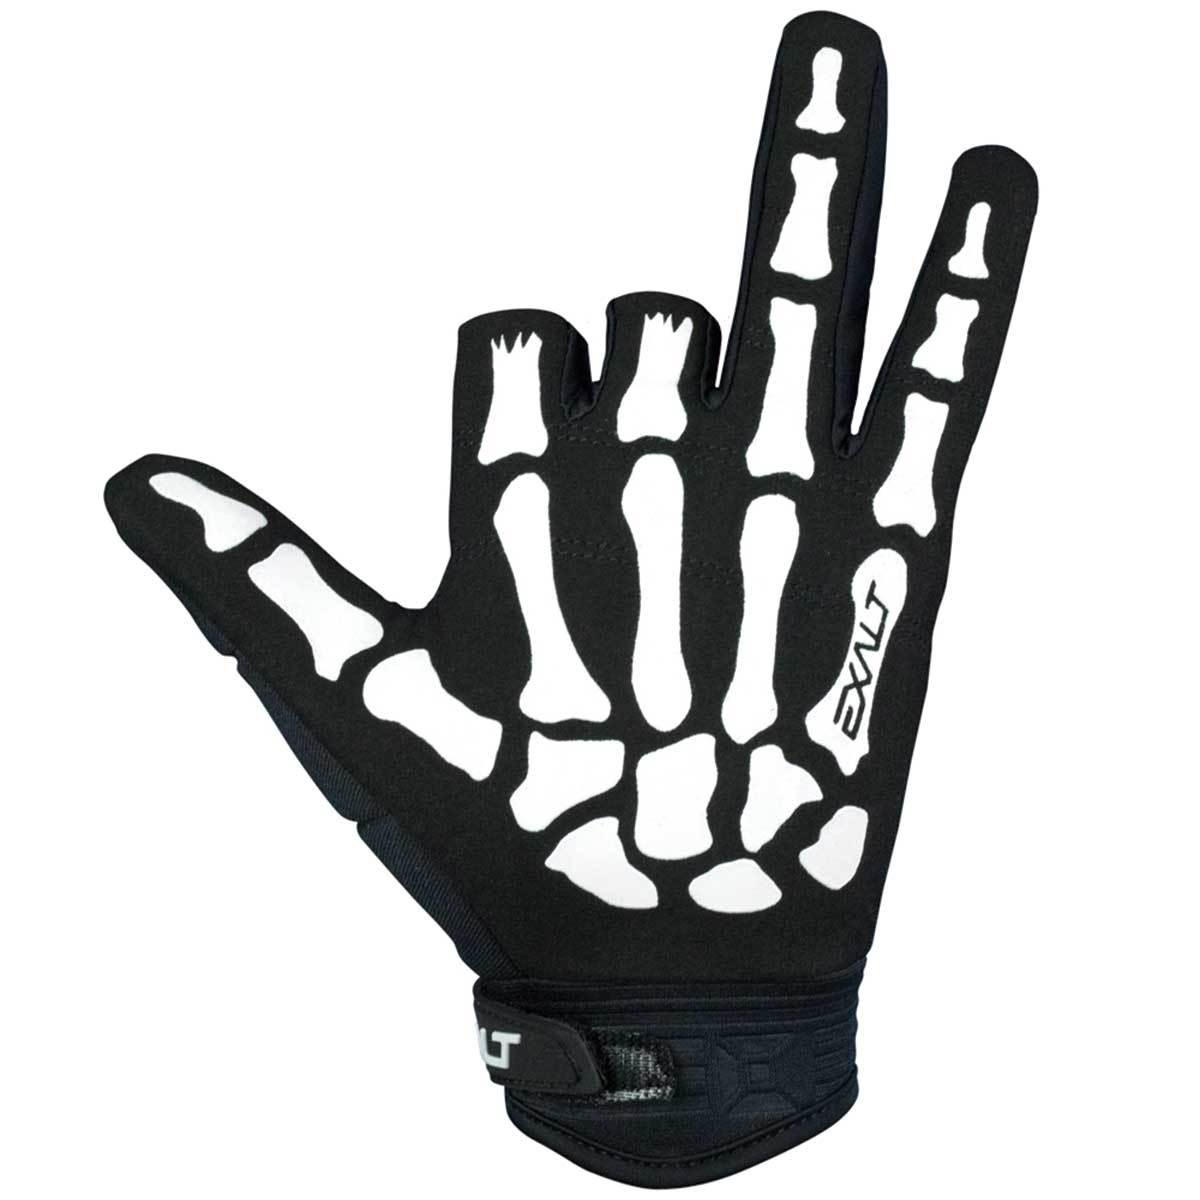 Exalt Paintball Death Grip Gloves Review